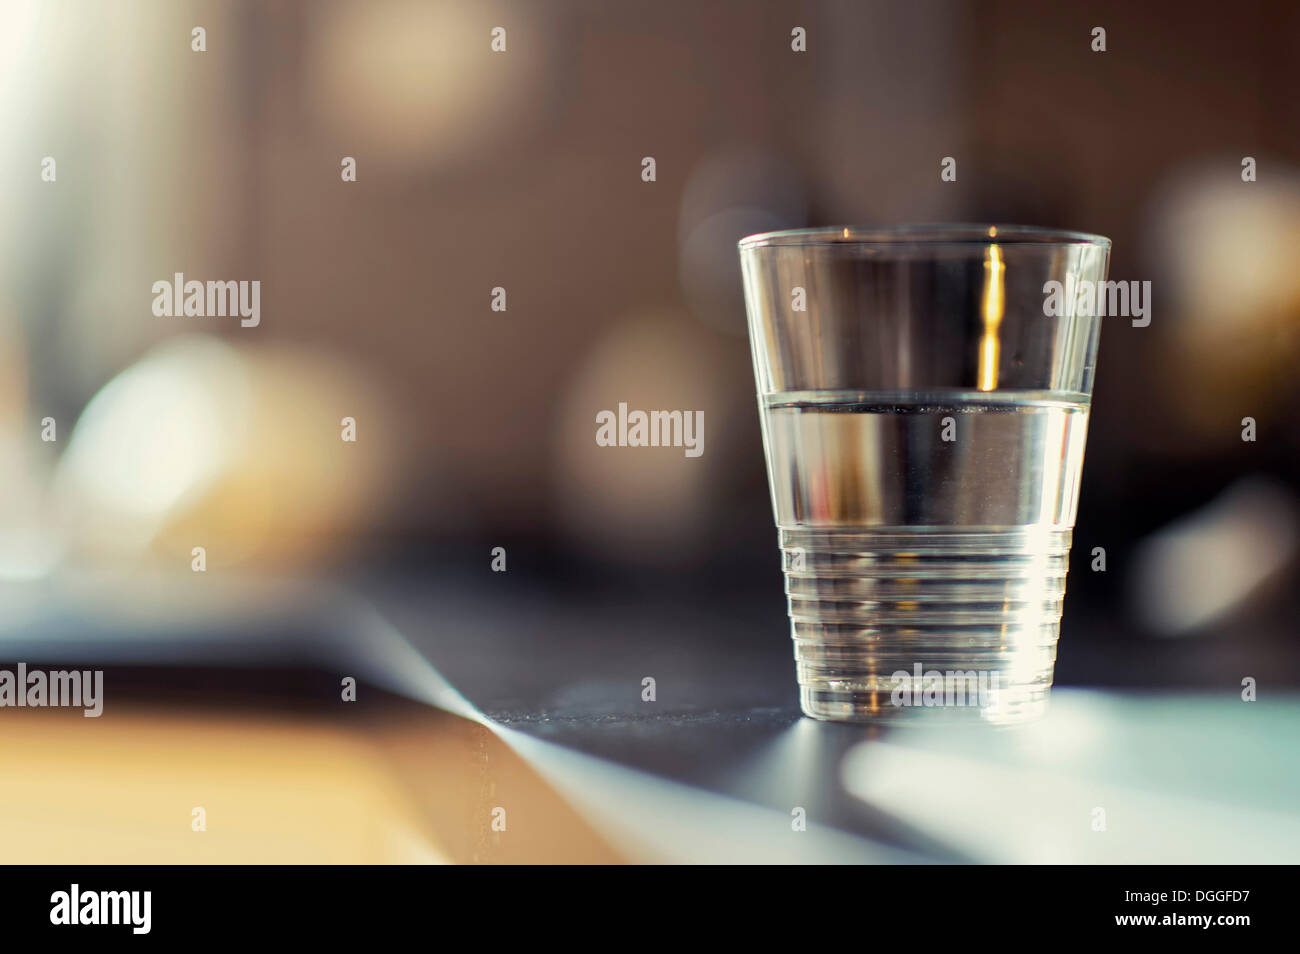 A half-full glass of water standing on a kitchen bench - Stock Image